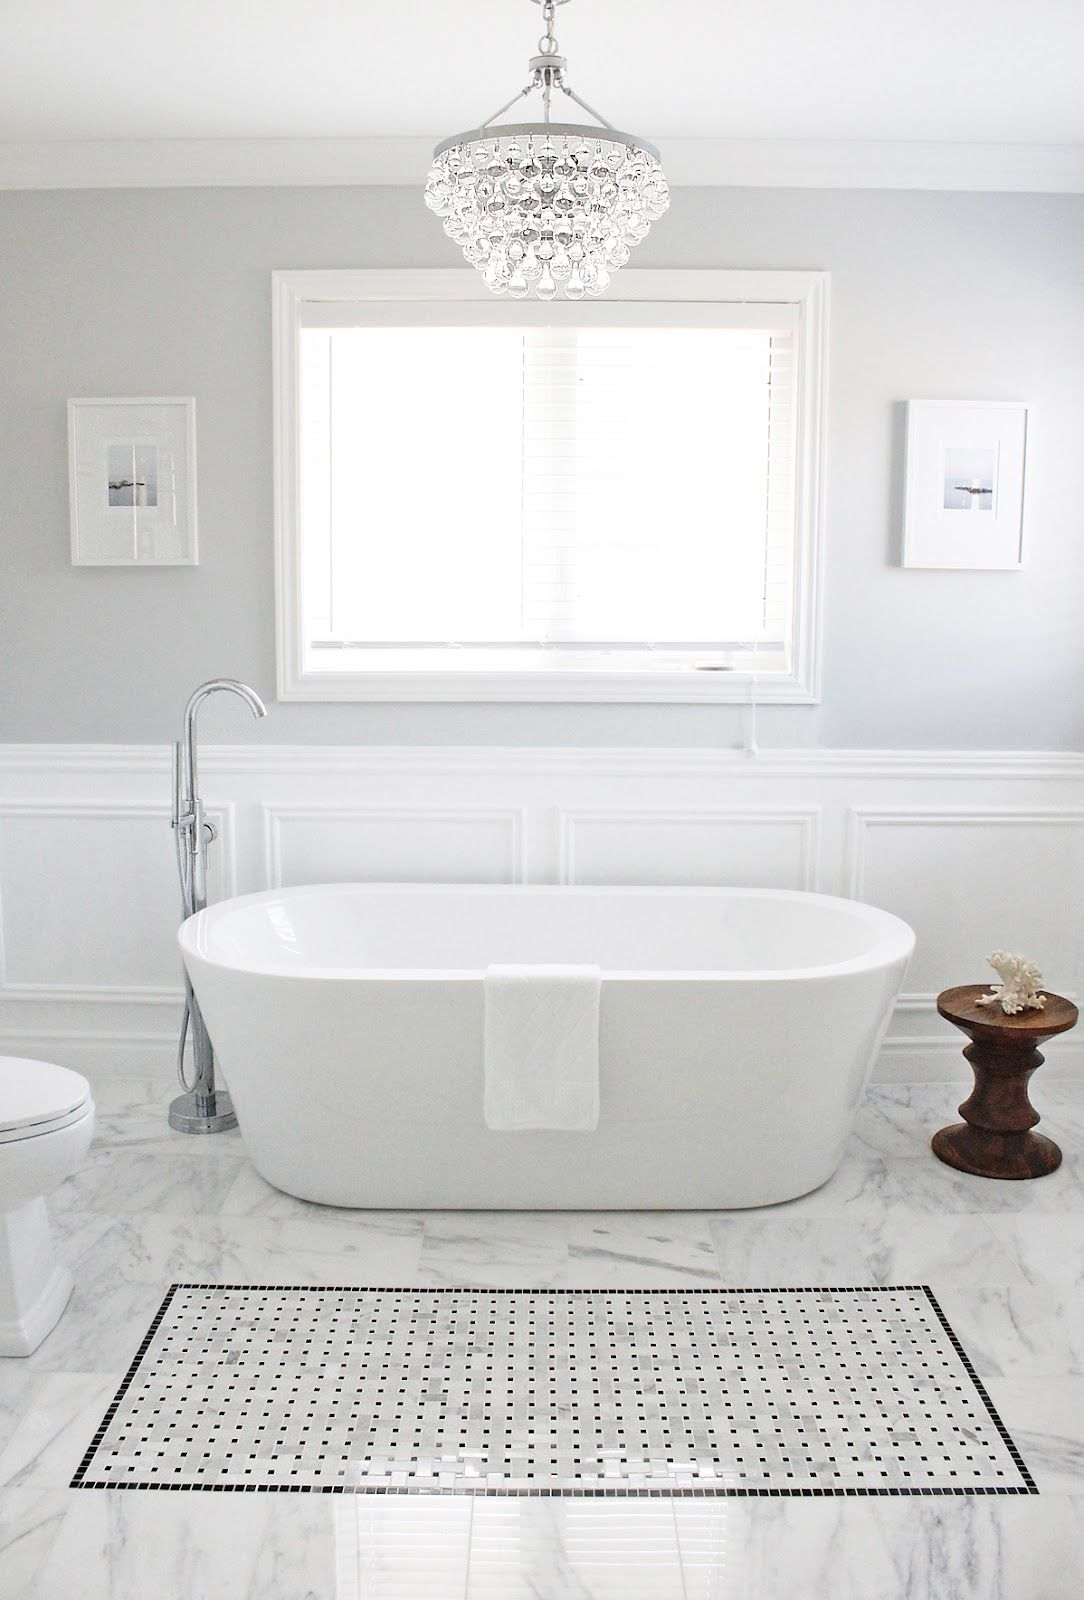 Valspar Polar Star Light Gray Bathroom Paint Color is creative inspiration  for us. Get more